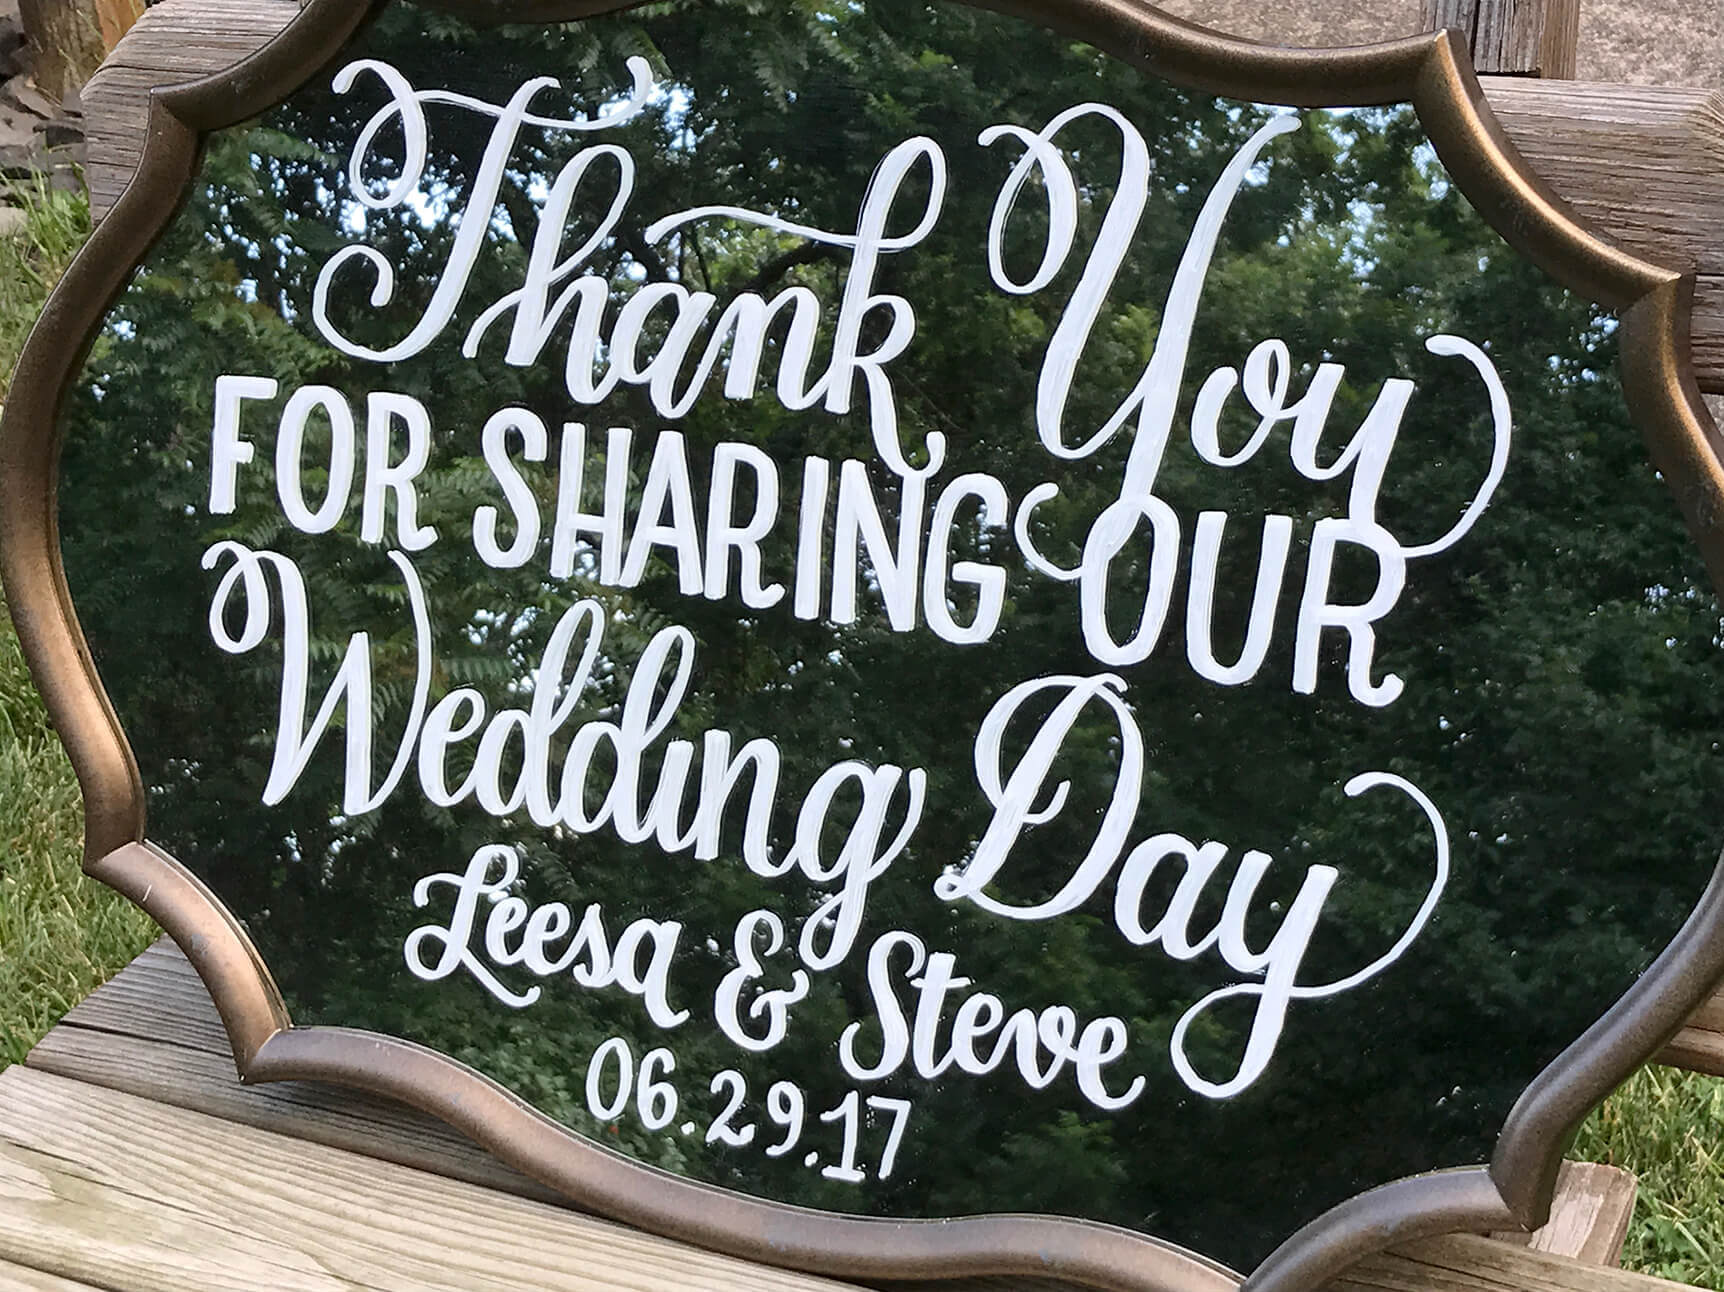 Hand-Lettered Signage - Our offerings go beyond the initial invitation. We also create day-of event signage, seating charts, place cards, table numbers, and more. These can be hand-drawn on a variety of surfaces or digitally produced.